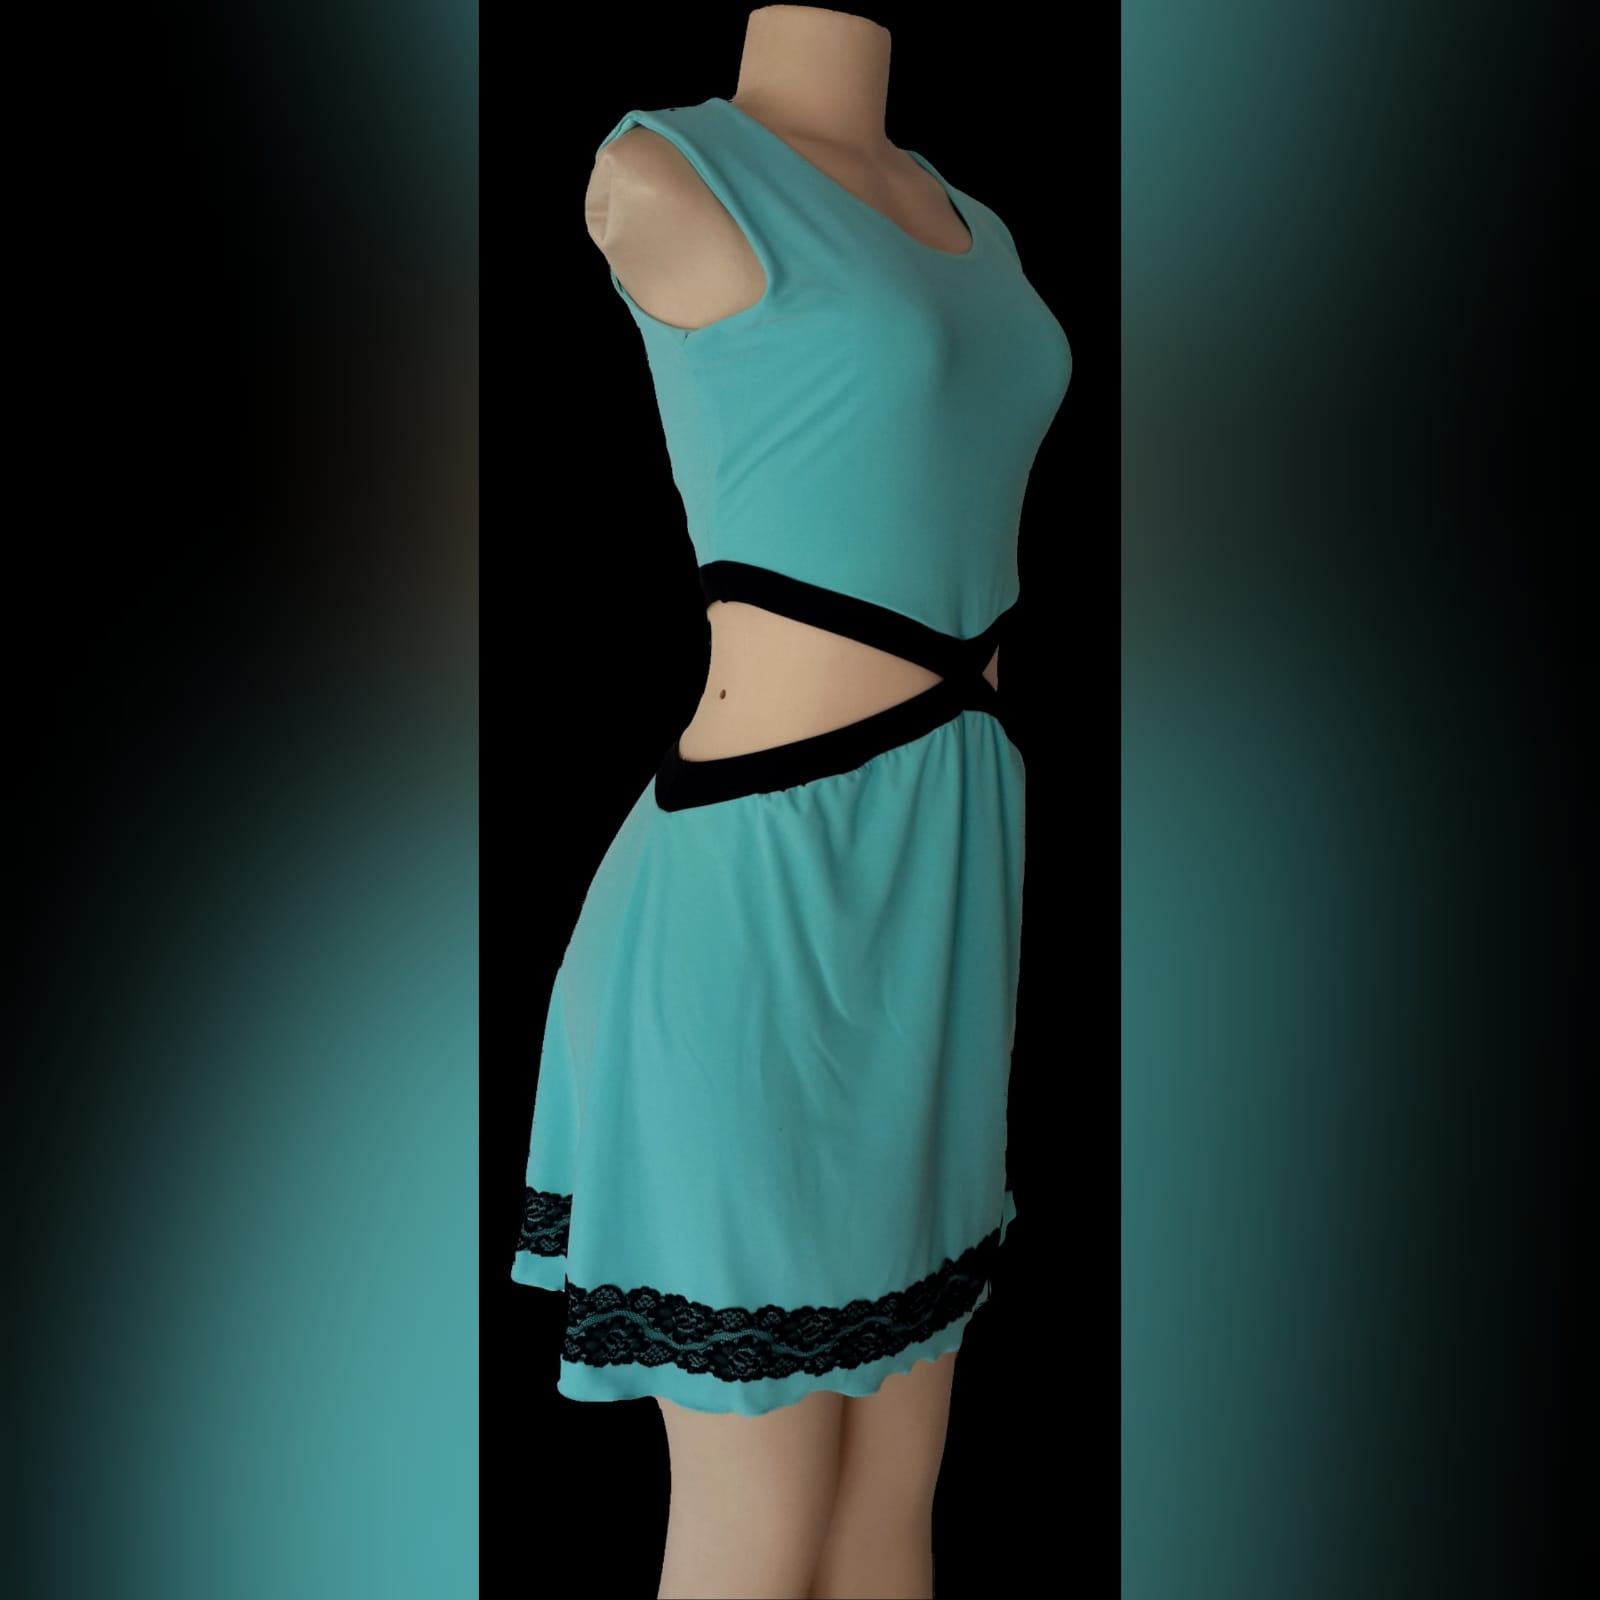 Mint green short smart casual dress 2 mint green short smart casual dress, open side tummy detailed with black and a lace border